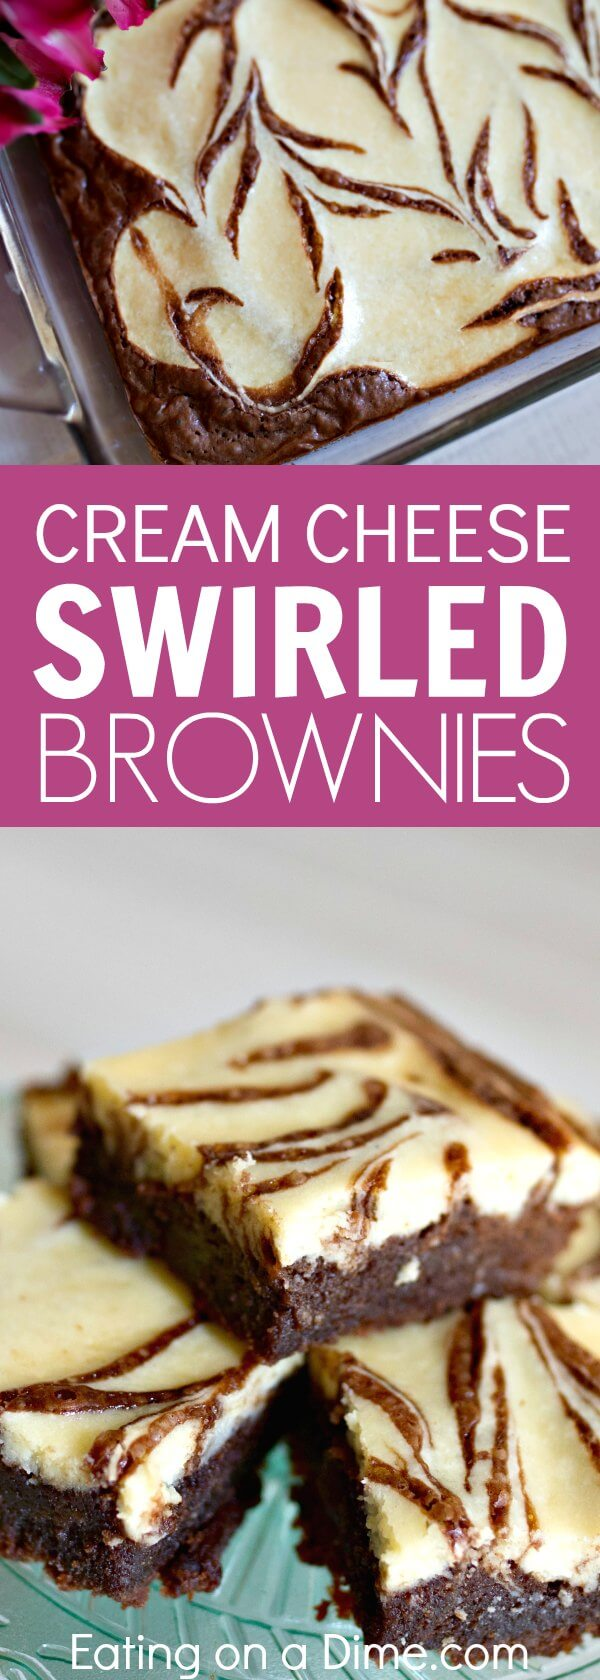 This easy cheesecake brownies recipe is sure to be a hit! Cream Cheese Brownies are so simple to make. Everyone will love cream cheese swirl brownies recipe. Once you know how to make cheesecake brownies, it's so easy!